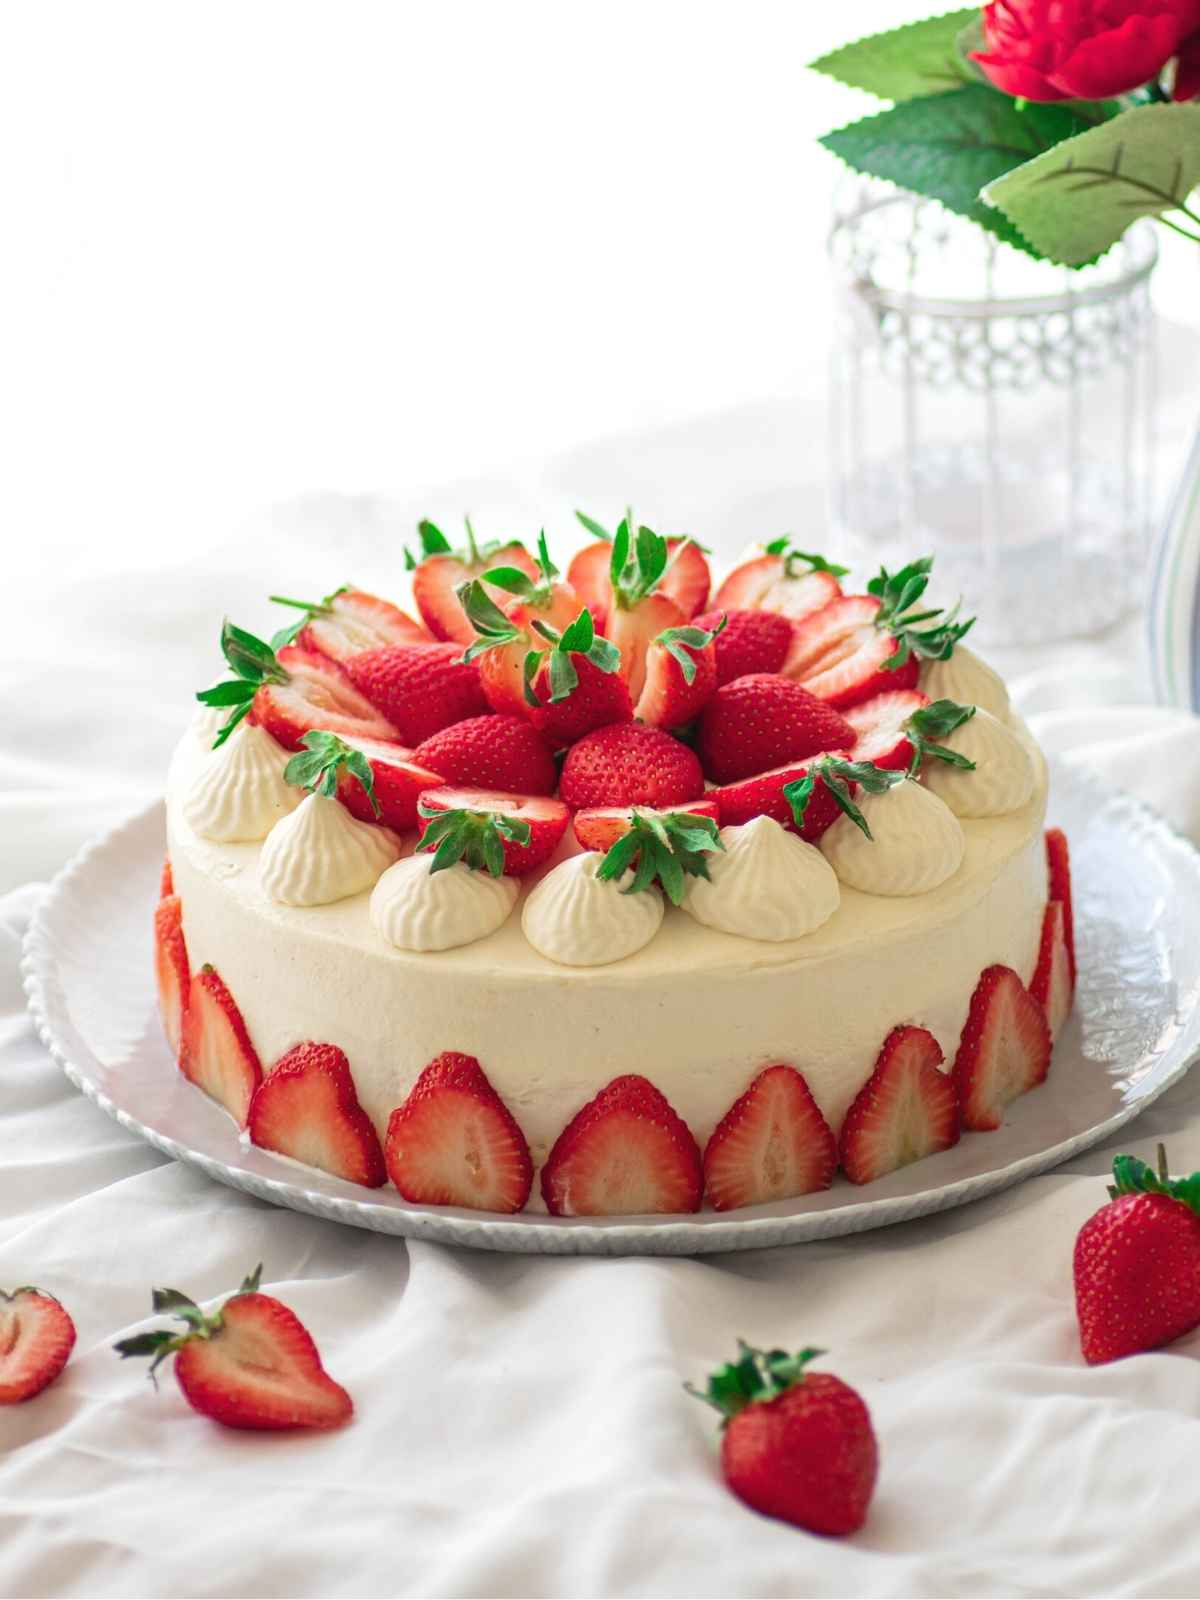 Japanese Strawberry Shortcake decorated with strawberries placed on white background